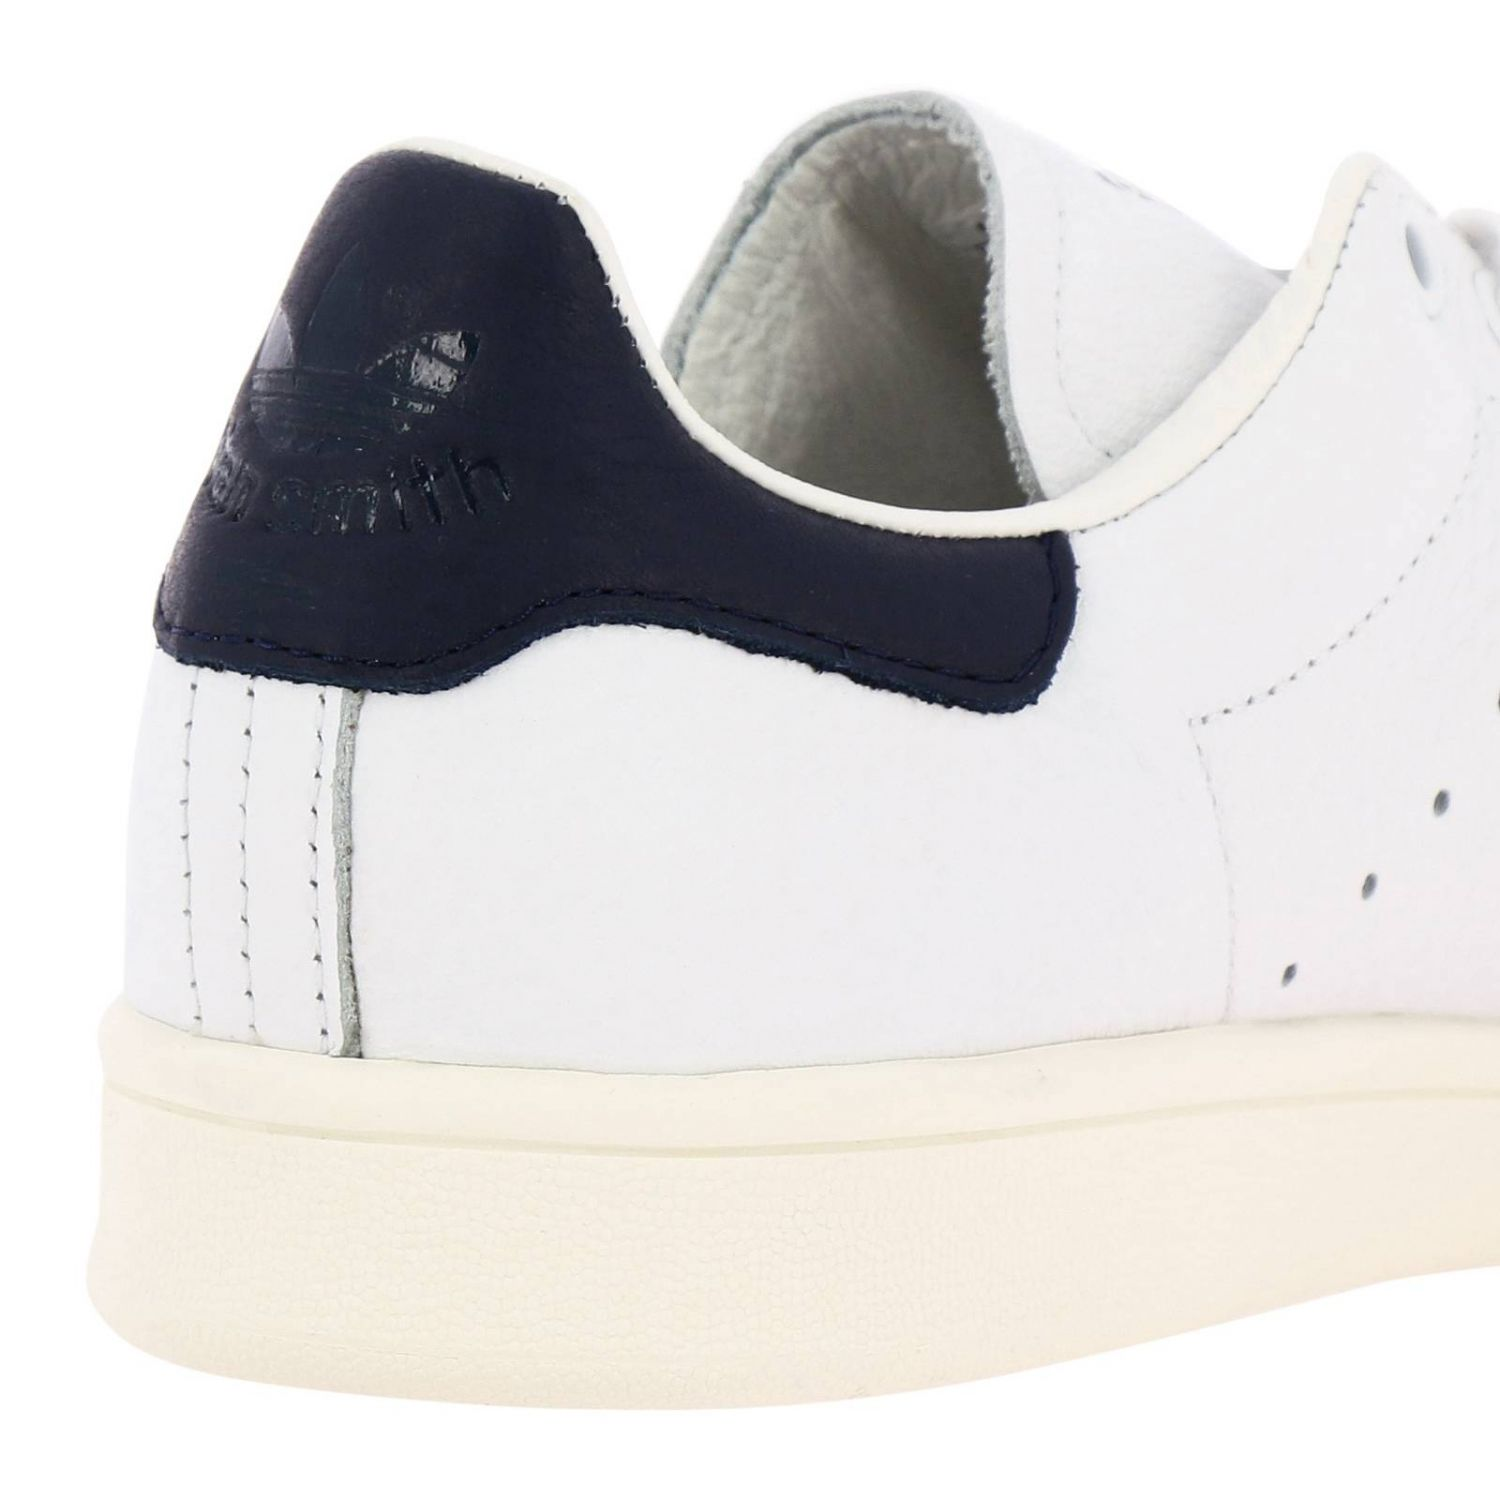 运动鞋 Adidas Originals: Adidas Originals Stan Smith 真皮运动鞋 白色 4